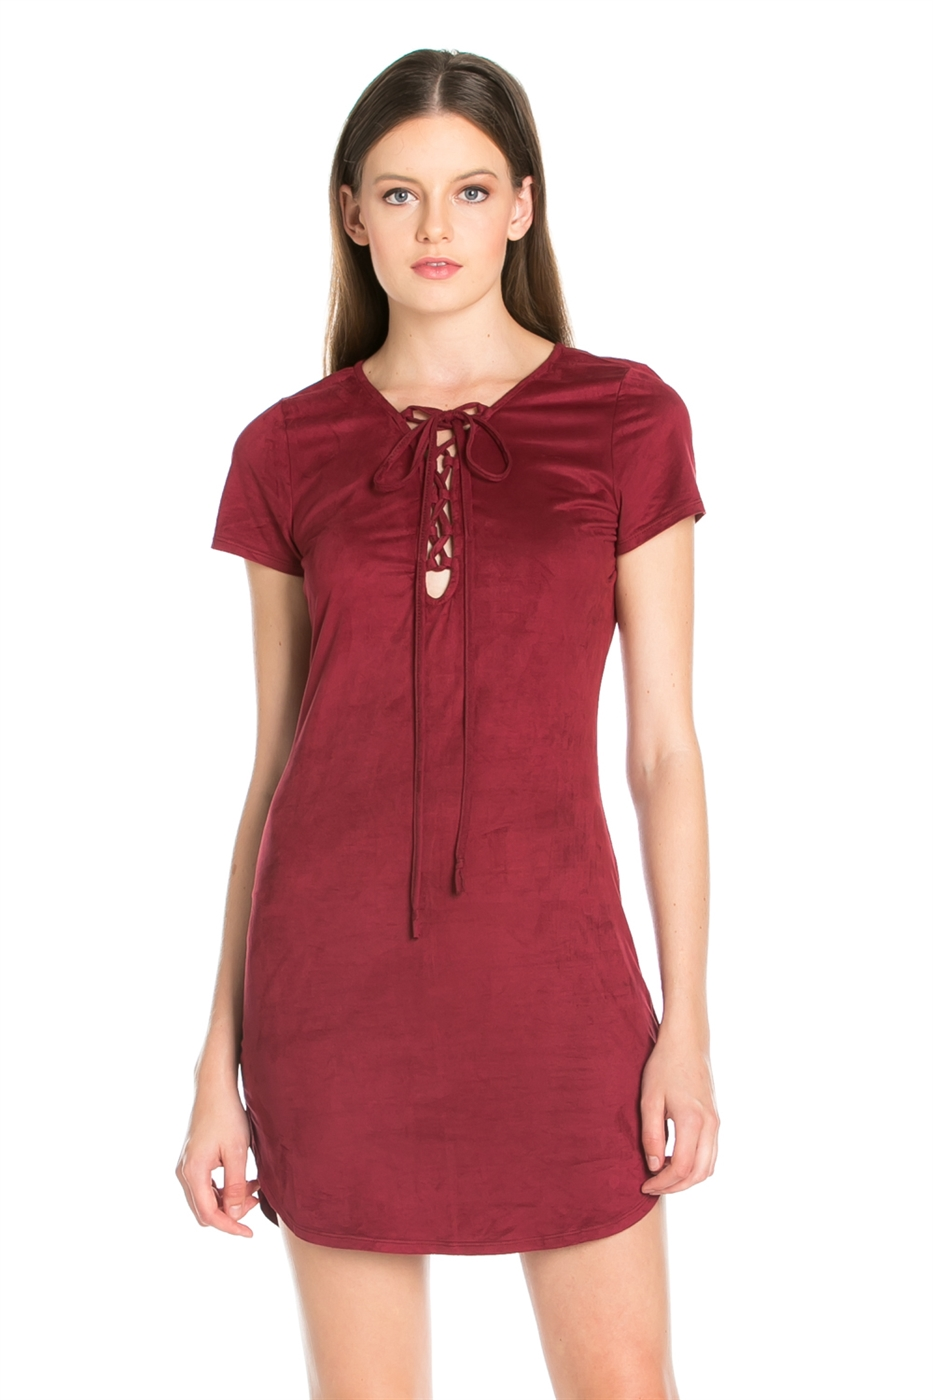 CENTER EYELET STRINGS DRESS - orangeshine.com